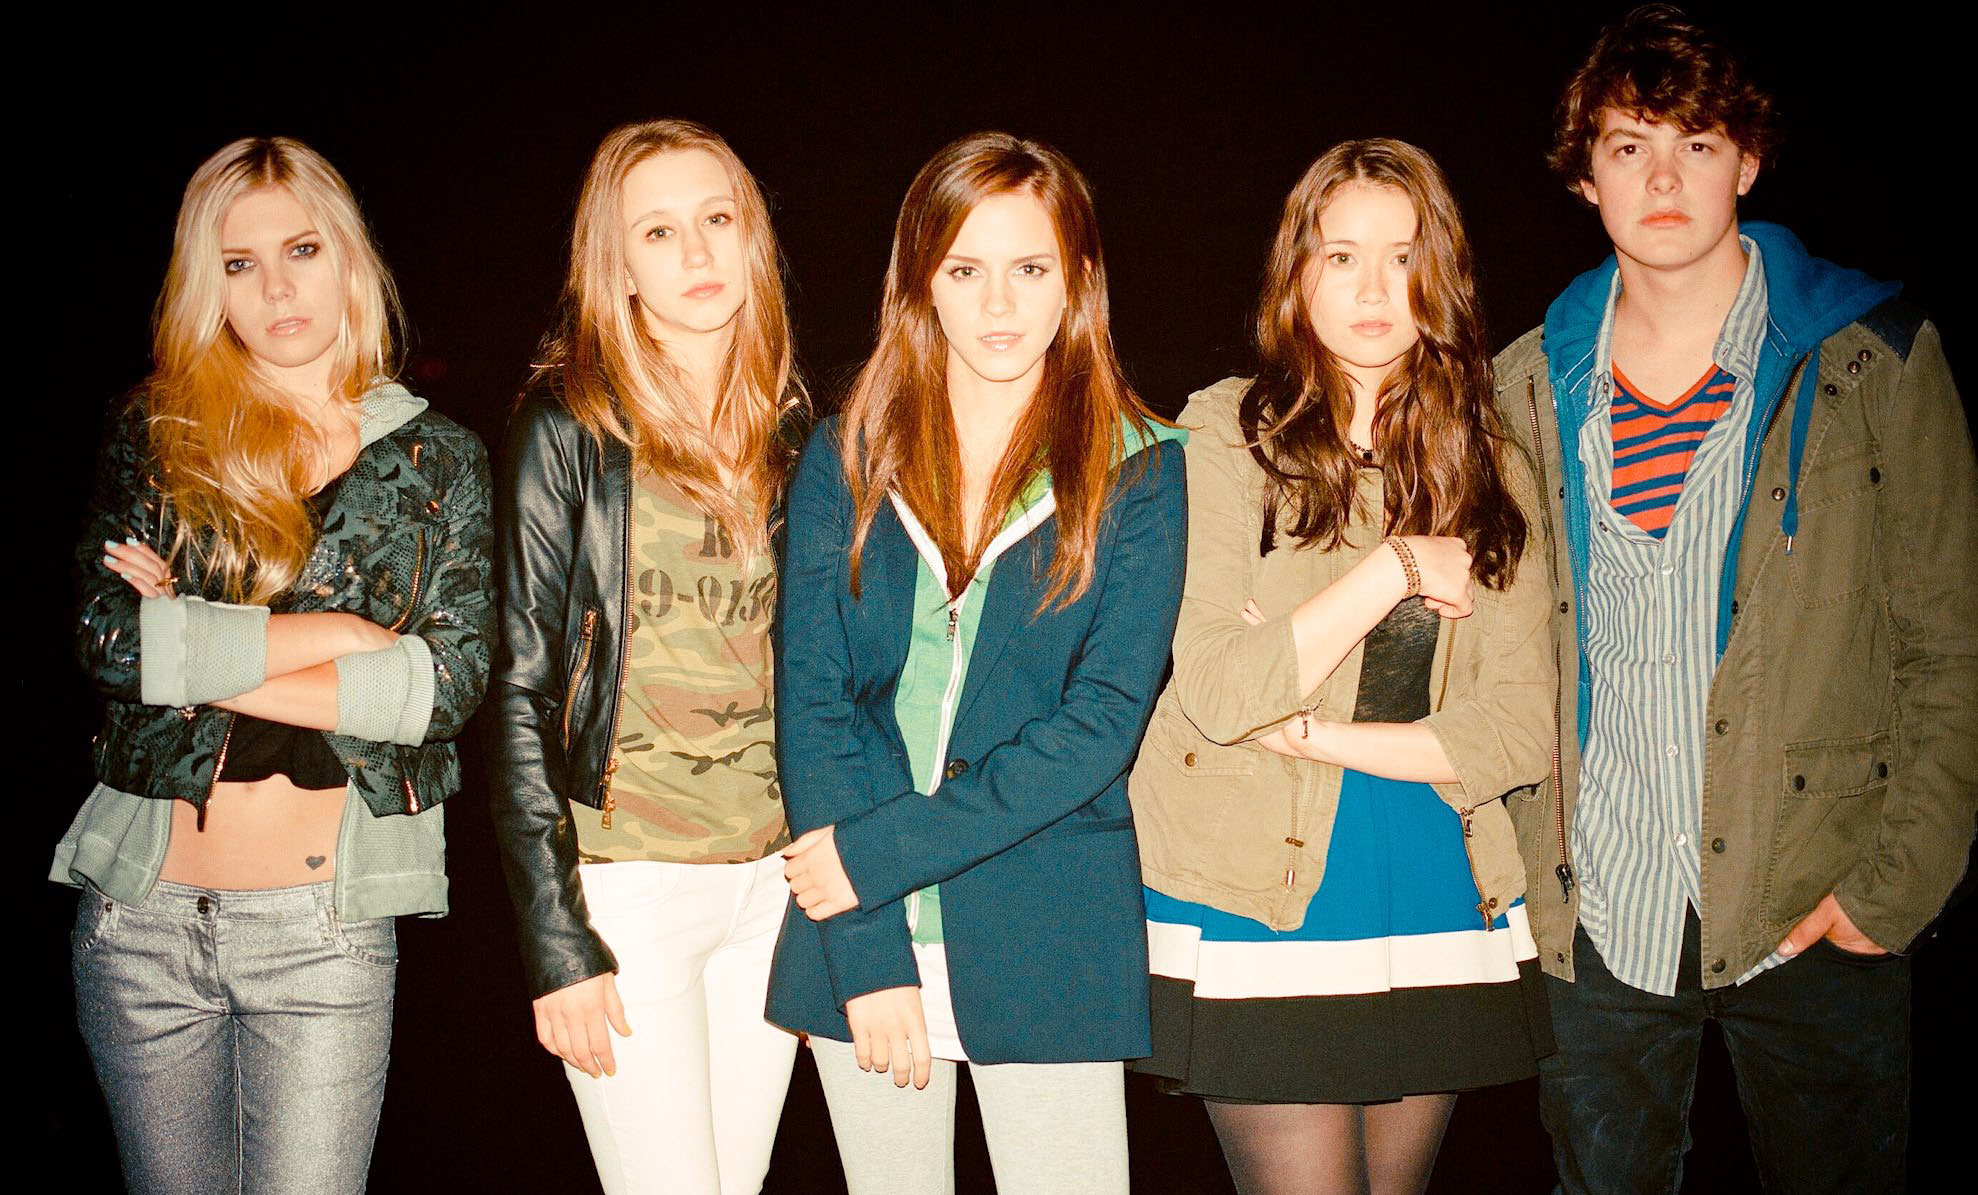 Taissa Farmiga Bling Ring: Movie Review: The Bling Ring (2013